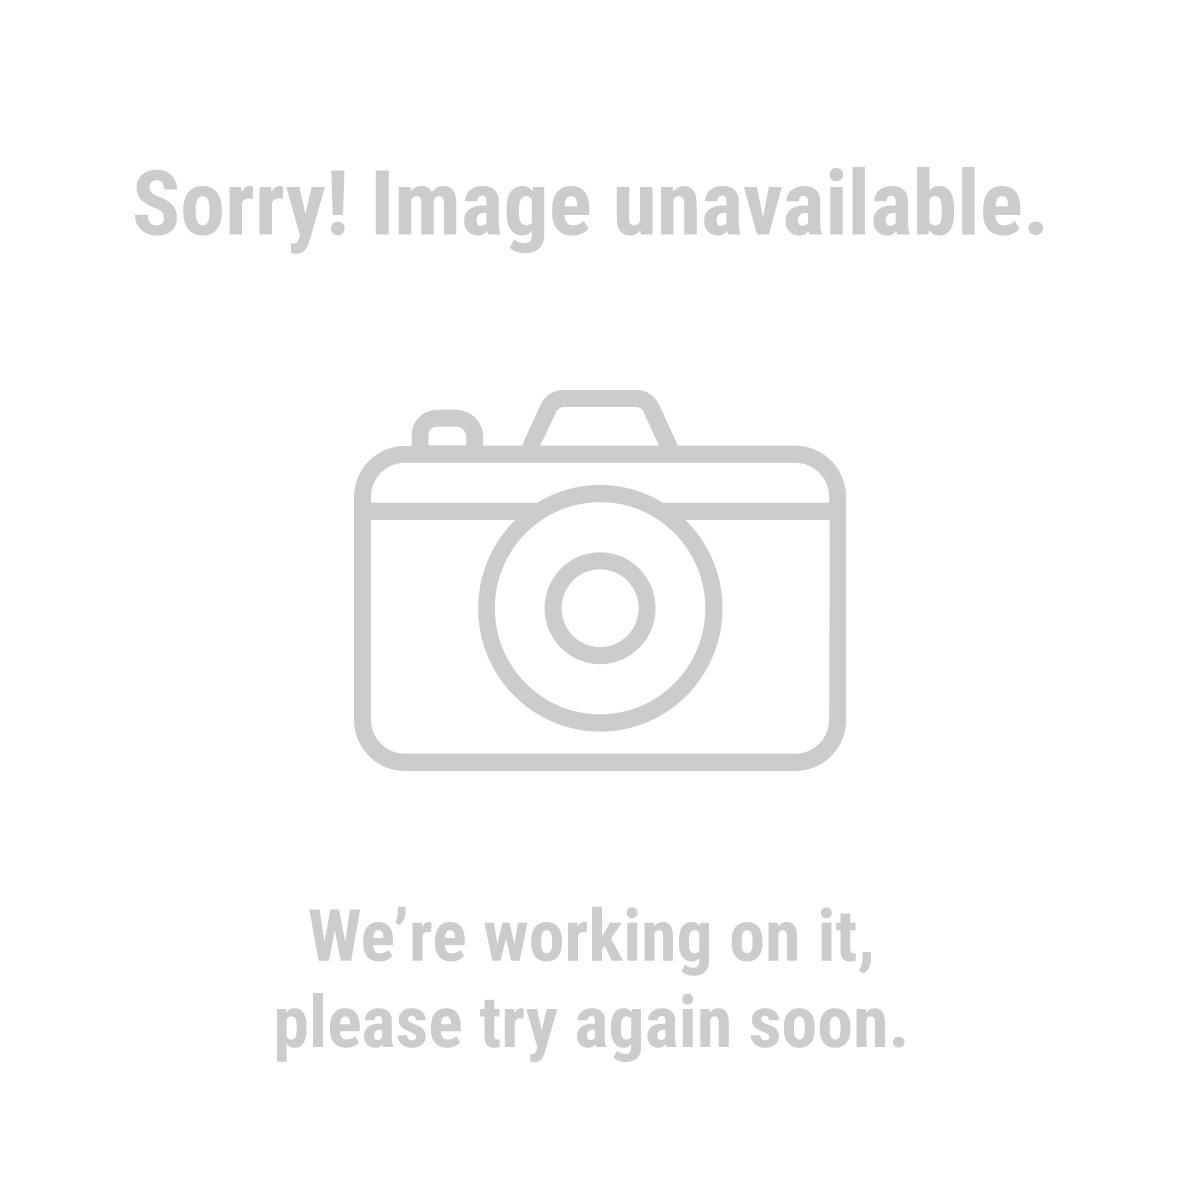 Chicago Electric Welding Systems 95136 240 Volt Inverter Plasma Cutter with Digital Display